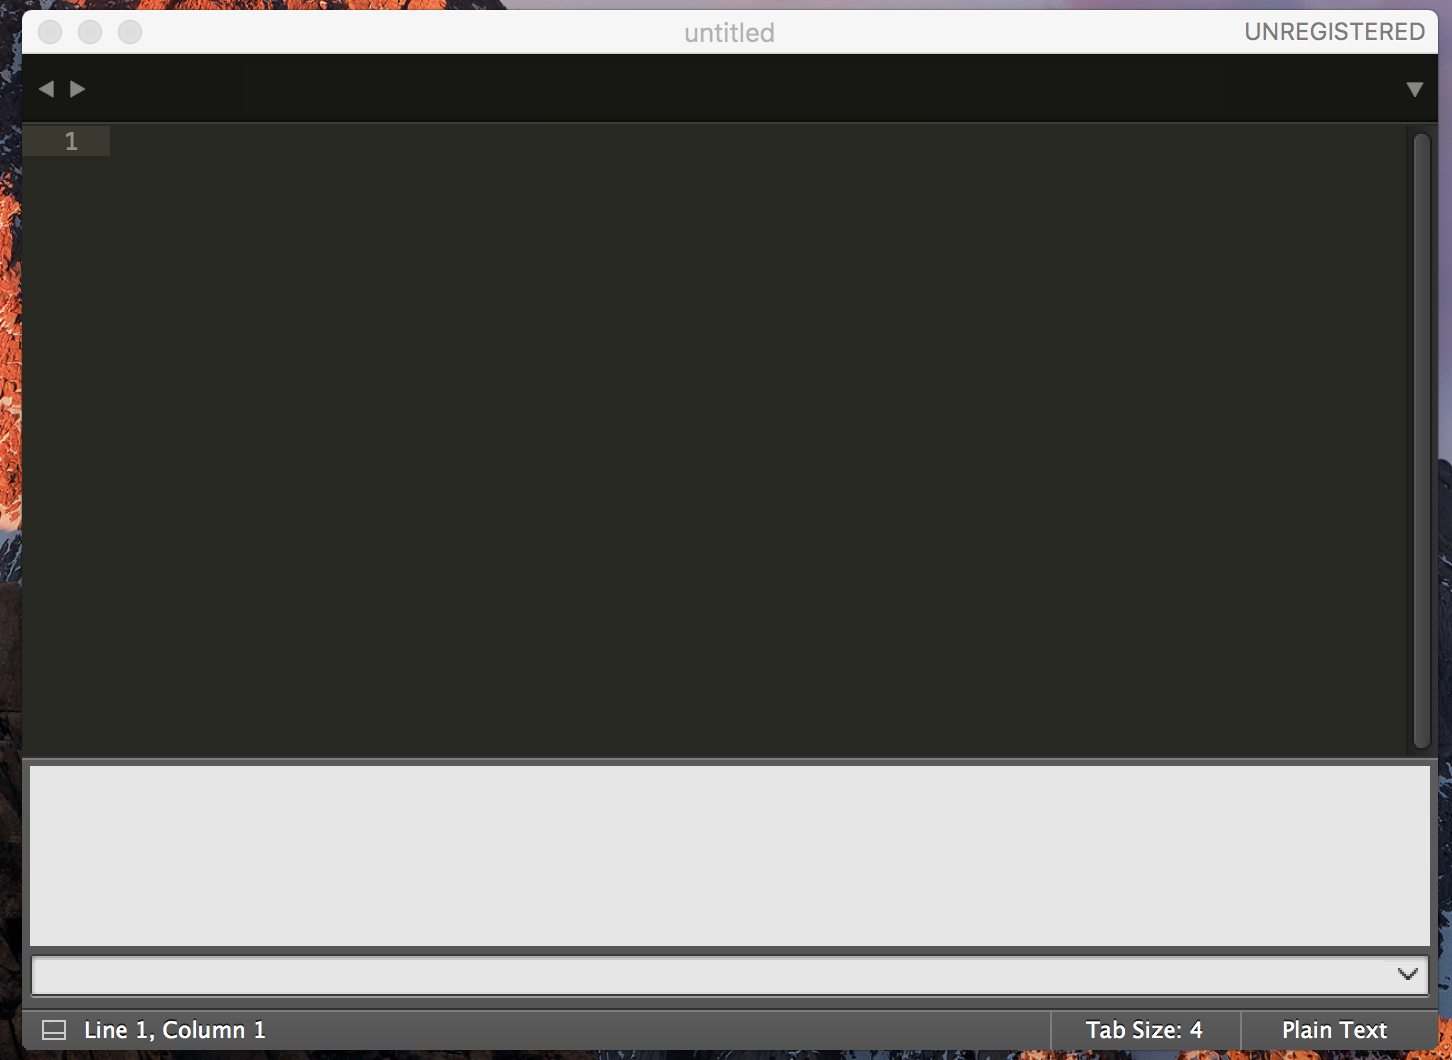 Sublime Text 3 Console